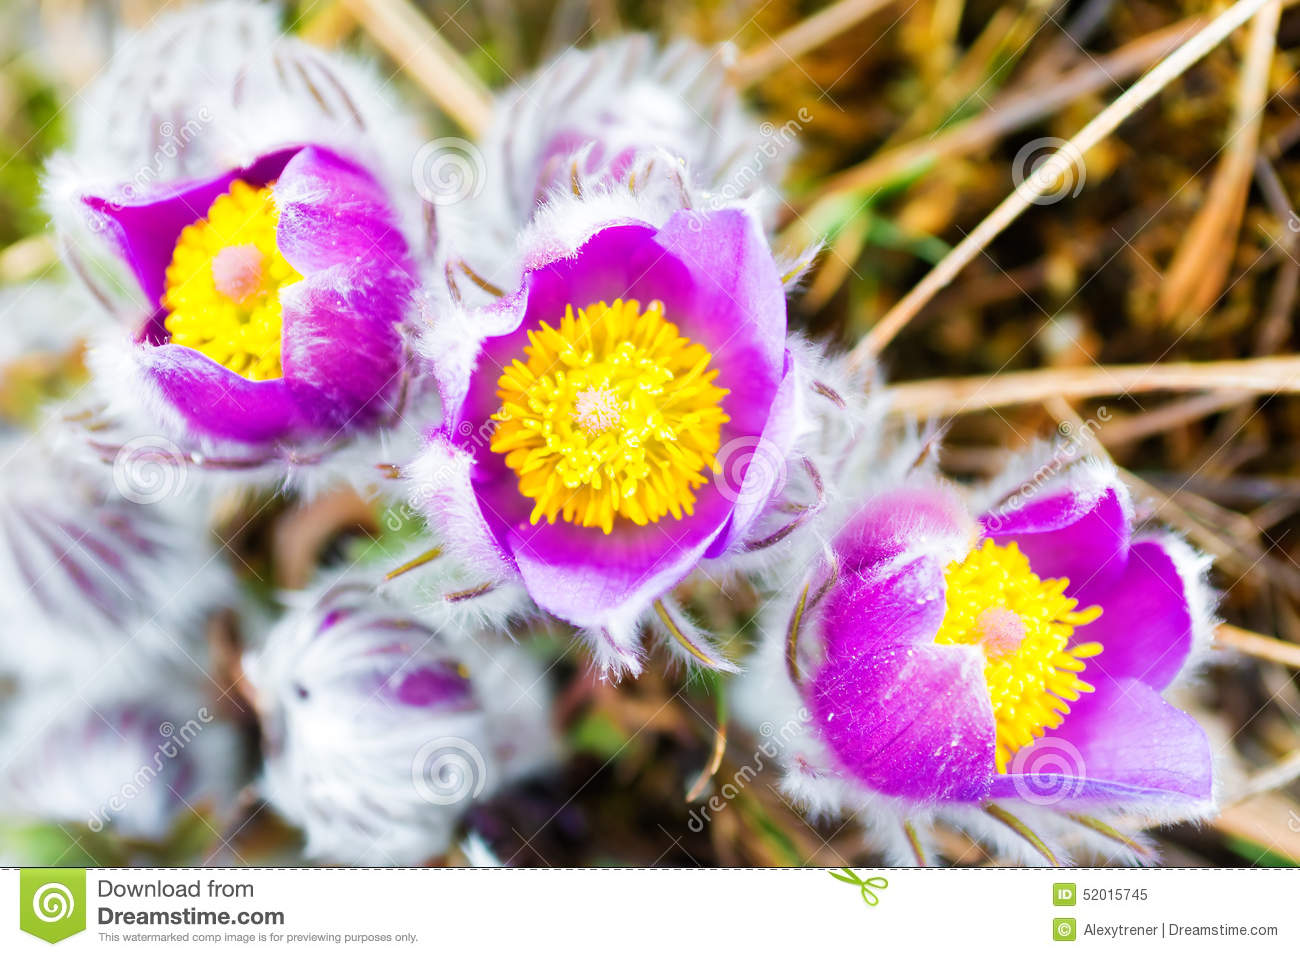 Wild spring flowers pulsatilla patens stock image image of macro wild spring flowers pulsatilla patens flowering plant in family ranunculaceae native to europe russia mongolia china canada and united states mightylinksfo